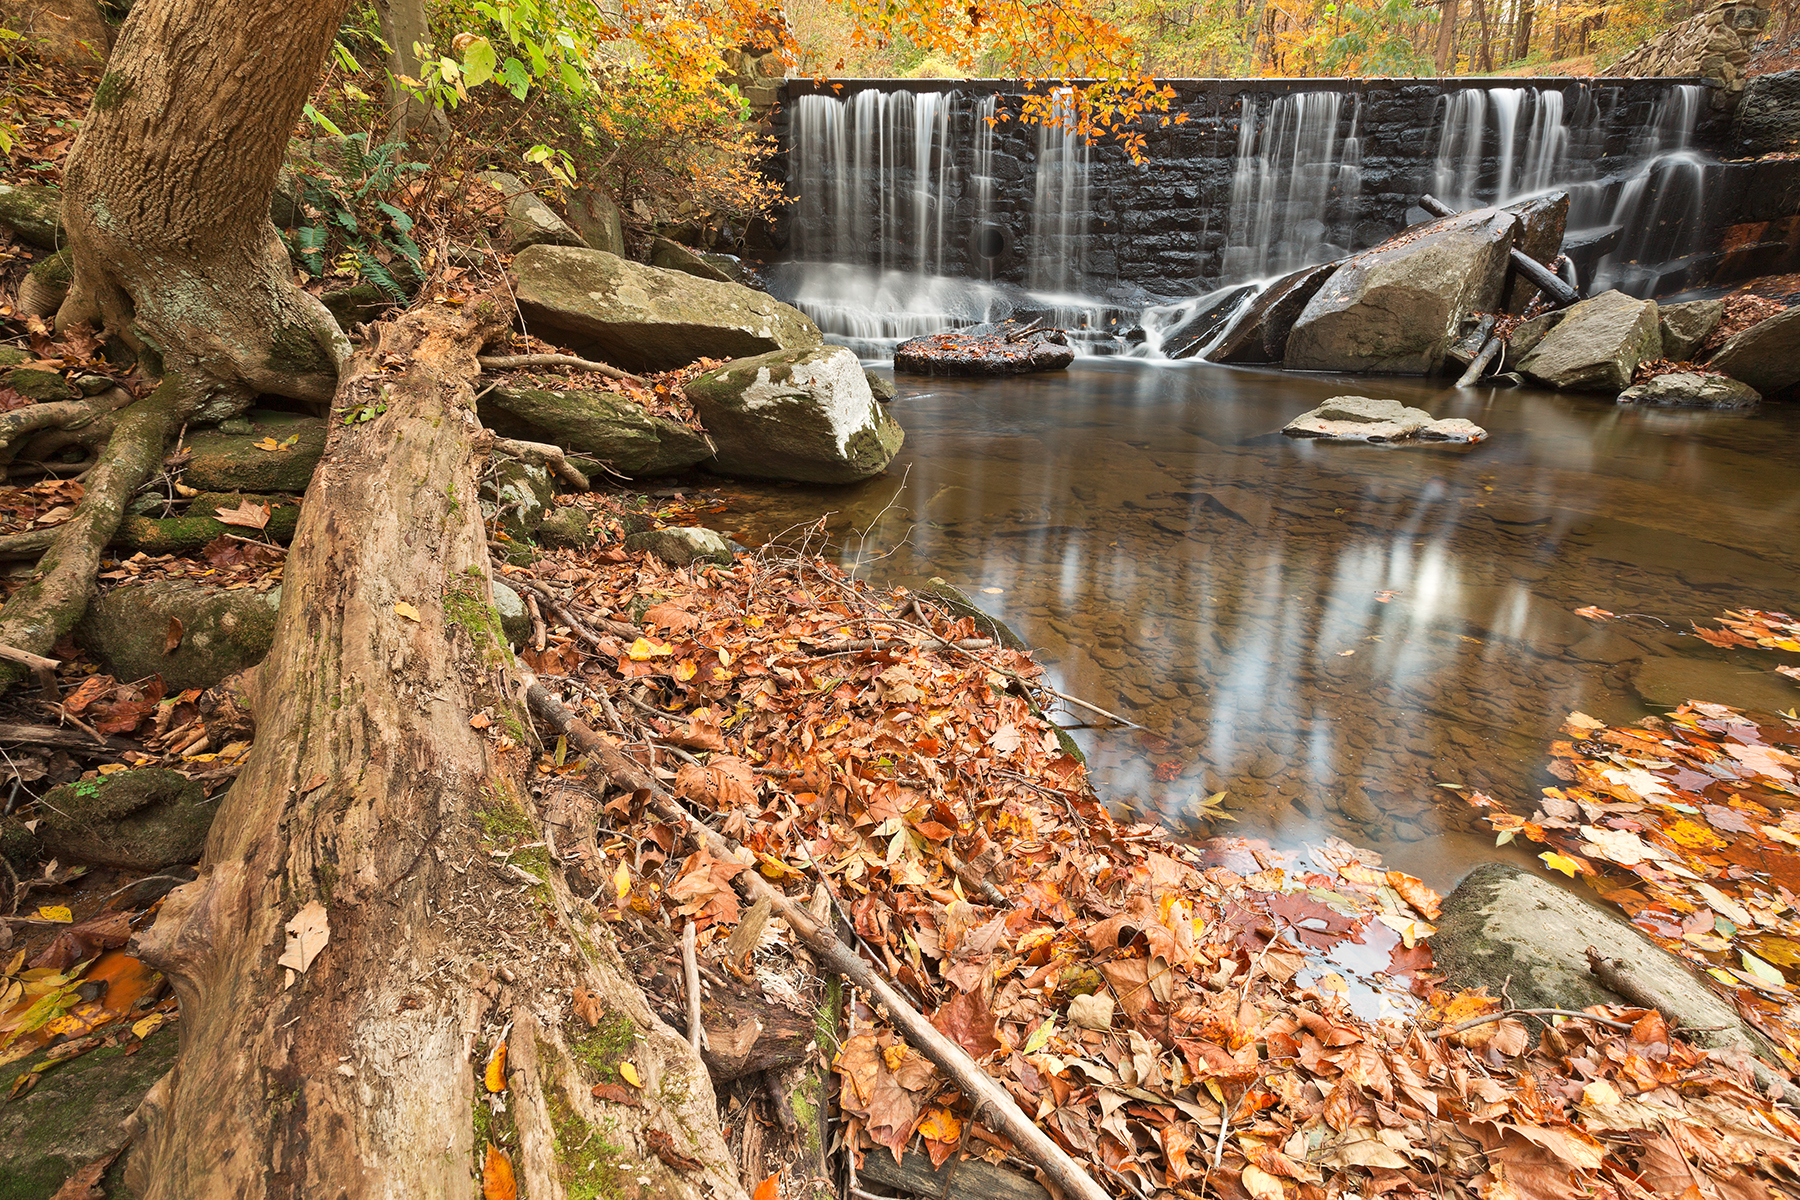 Rock Run Autumn Falls, Age, Pool, Serene, Scenic, HQ Photo